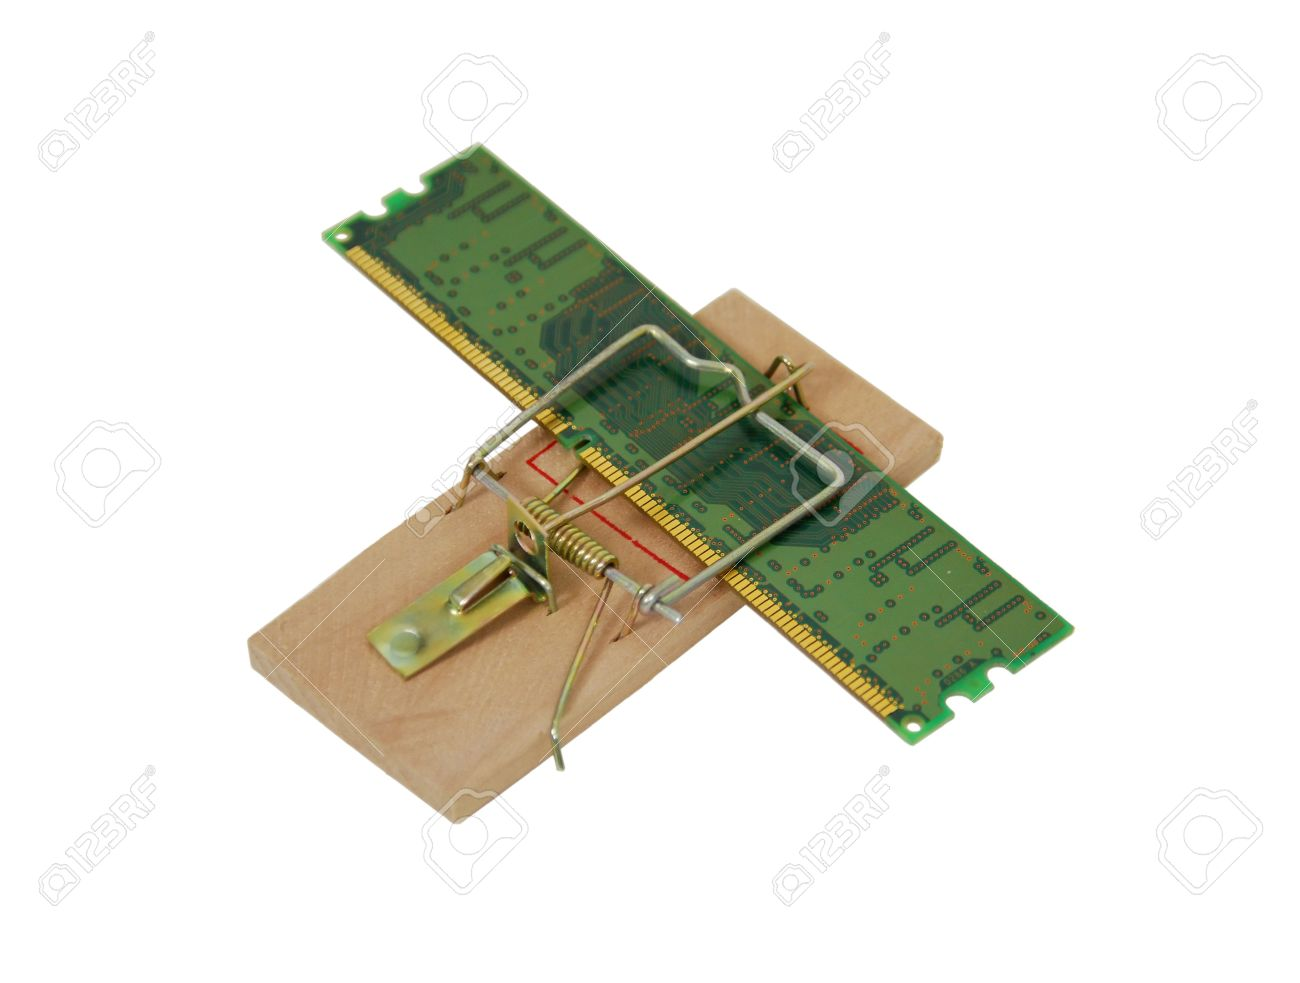 https://cdn.discordapp.com/attachments/245853722972913665/247791619263168512/4061669-Computer-memory-stick-circuit-board-Mouse-trap-used-to-catch-small-rodents-Stock-Photo.png